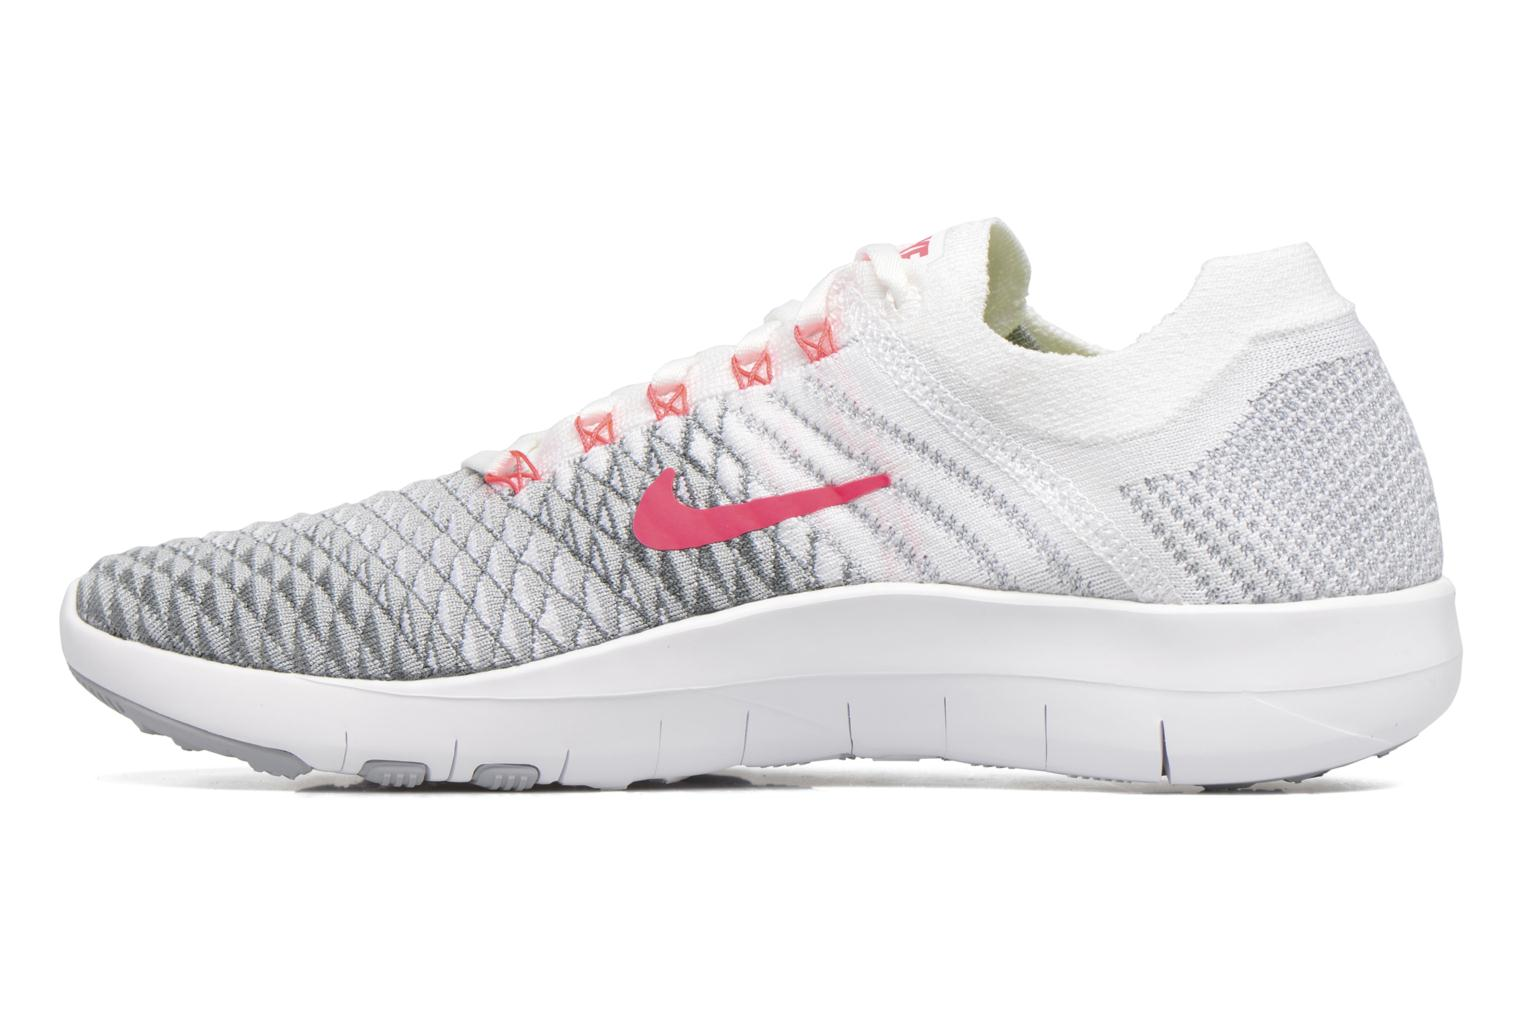 Chaussures de sport Nike Wmns Nike Free Tr Flyknit 2 Rose vue face